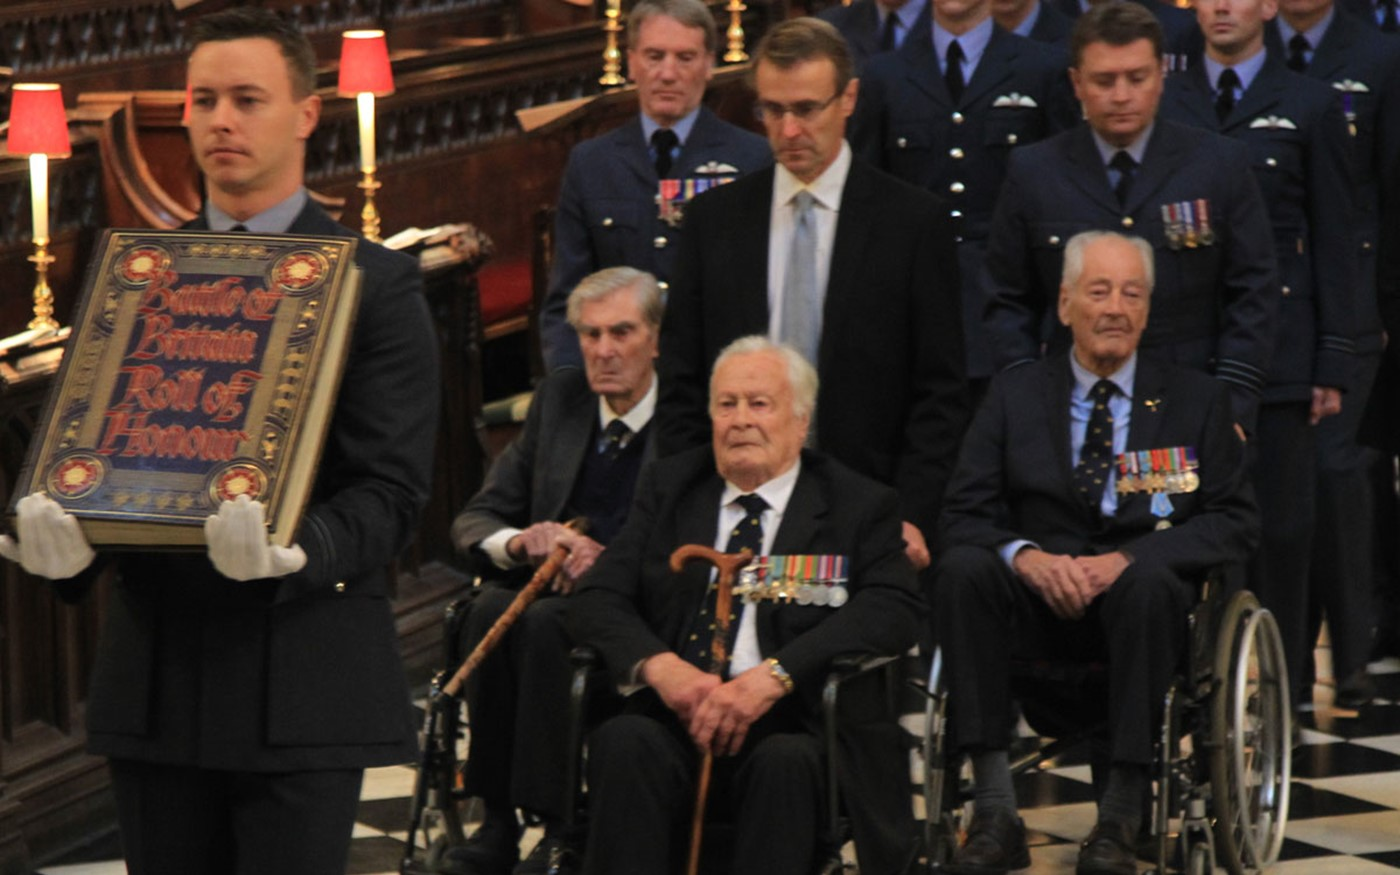 The Battle of Britain Roll of Honour is borne through the Abbey, escorted by The Battle of Britain veterans